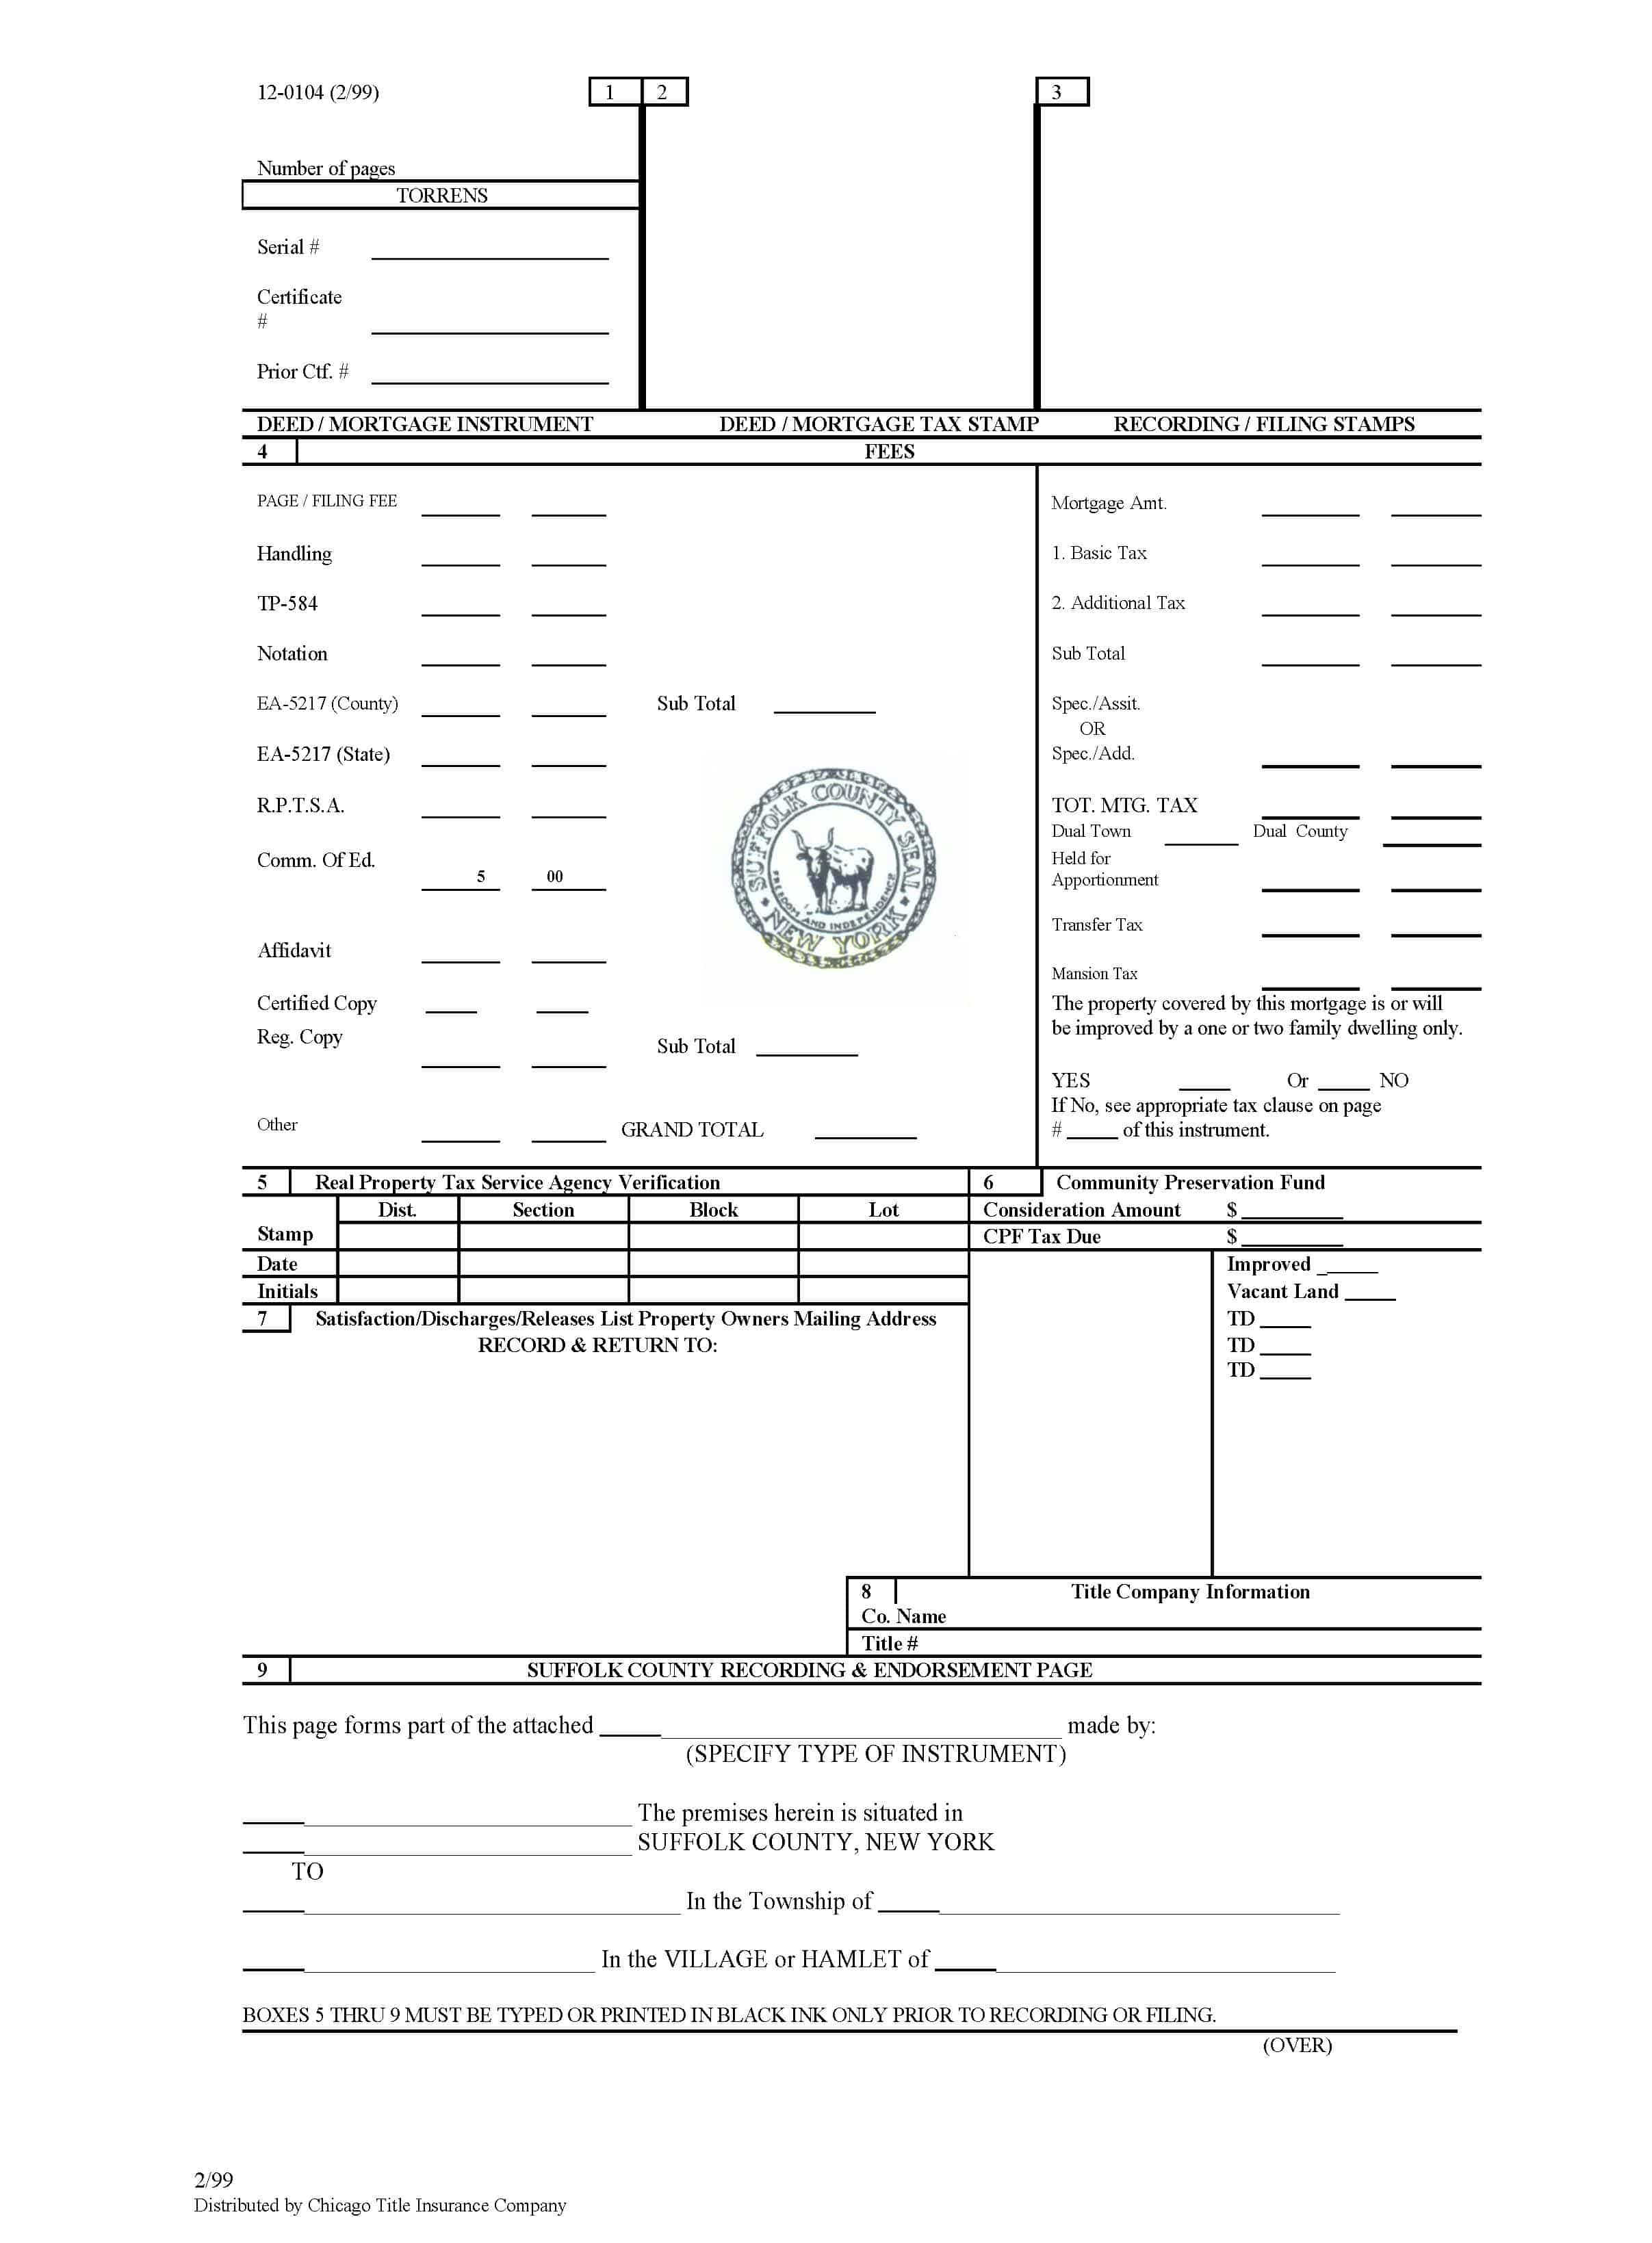 Suffolk County Recording Sheet